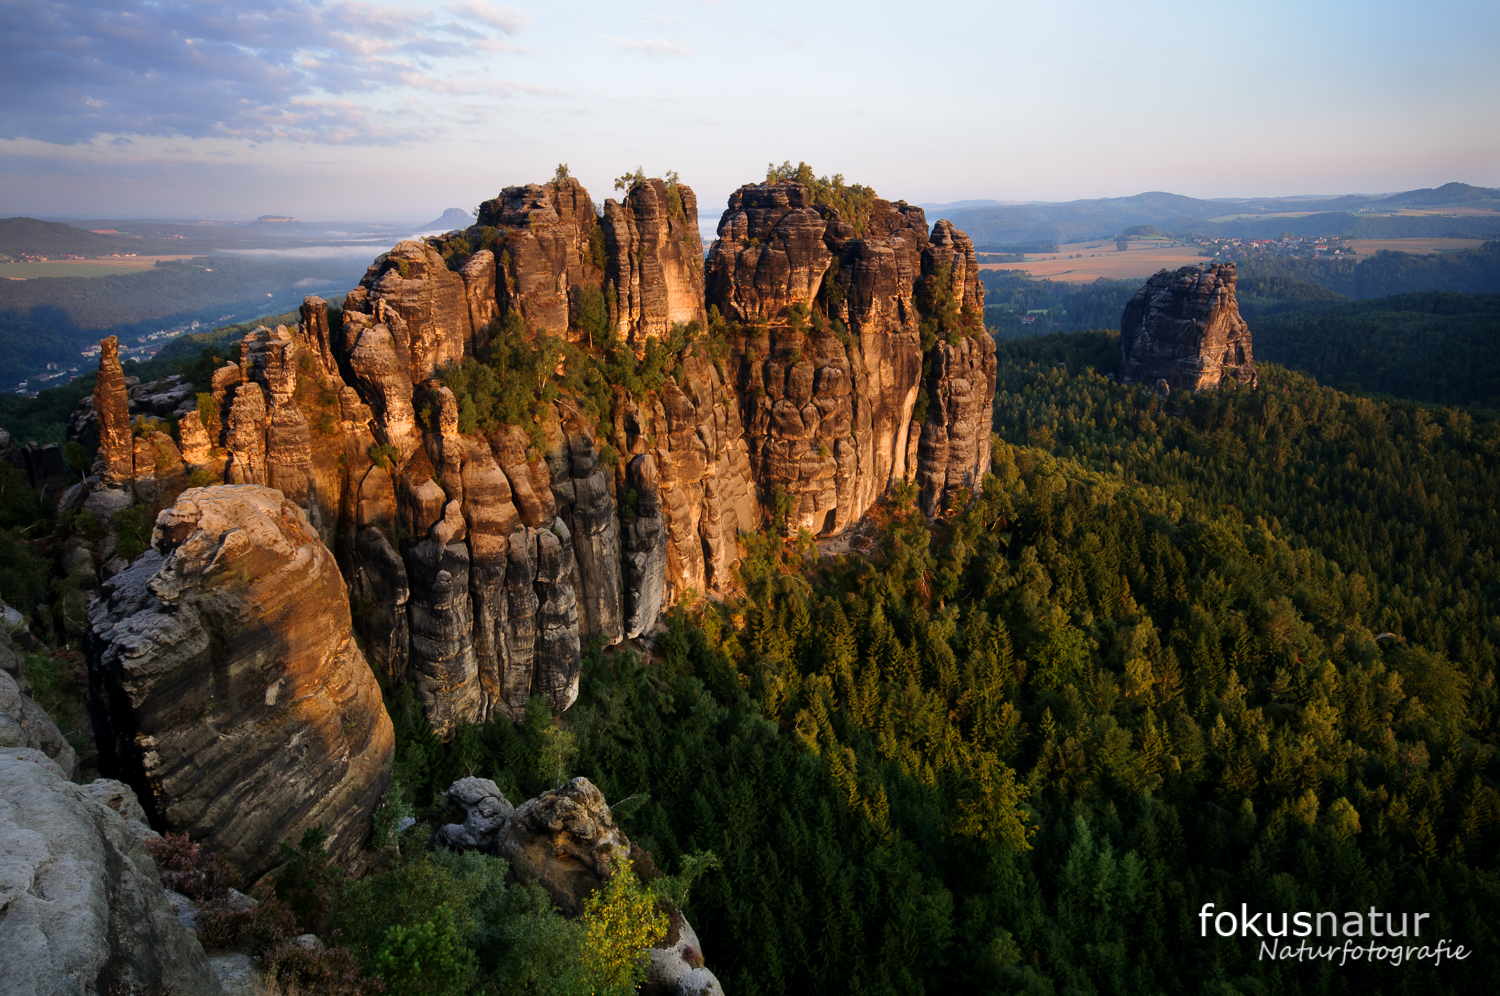 Mountains in the Saxonian Switzerland